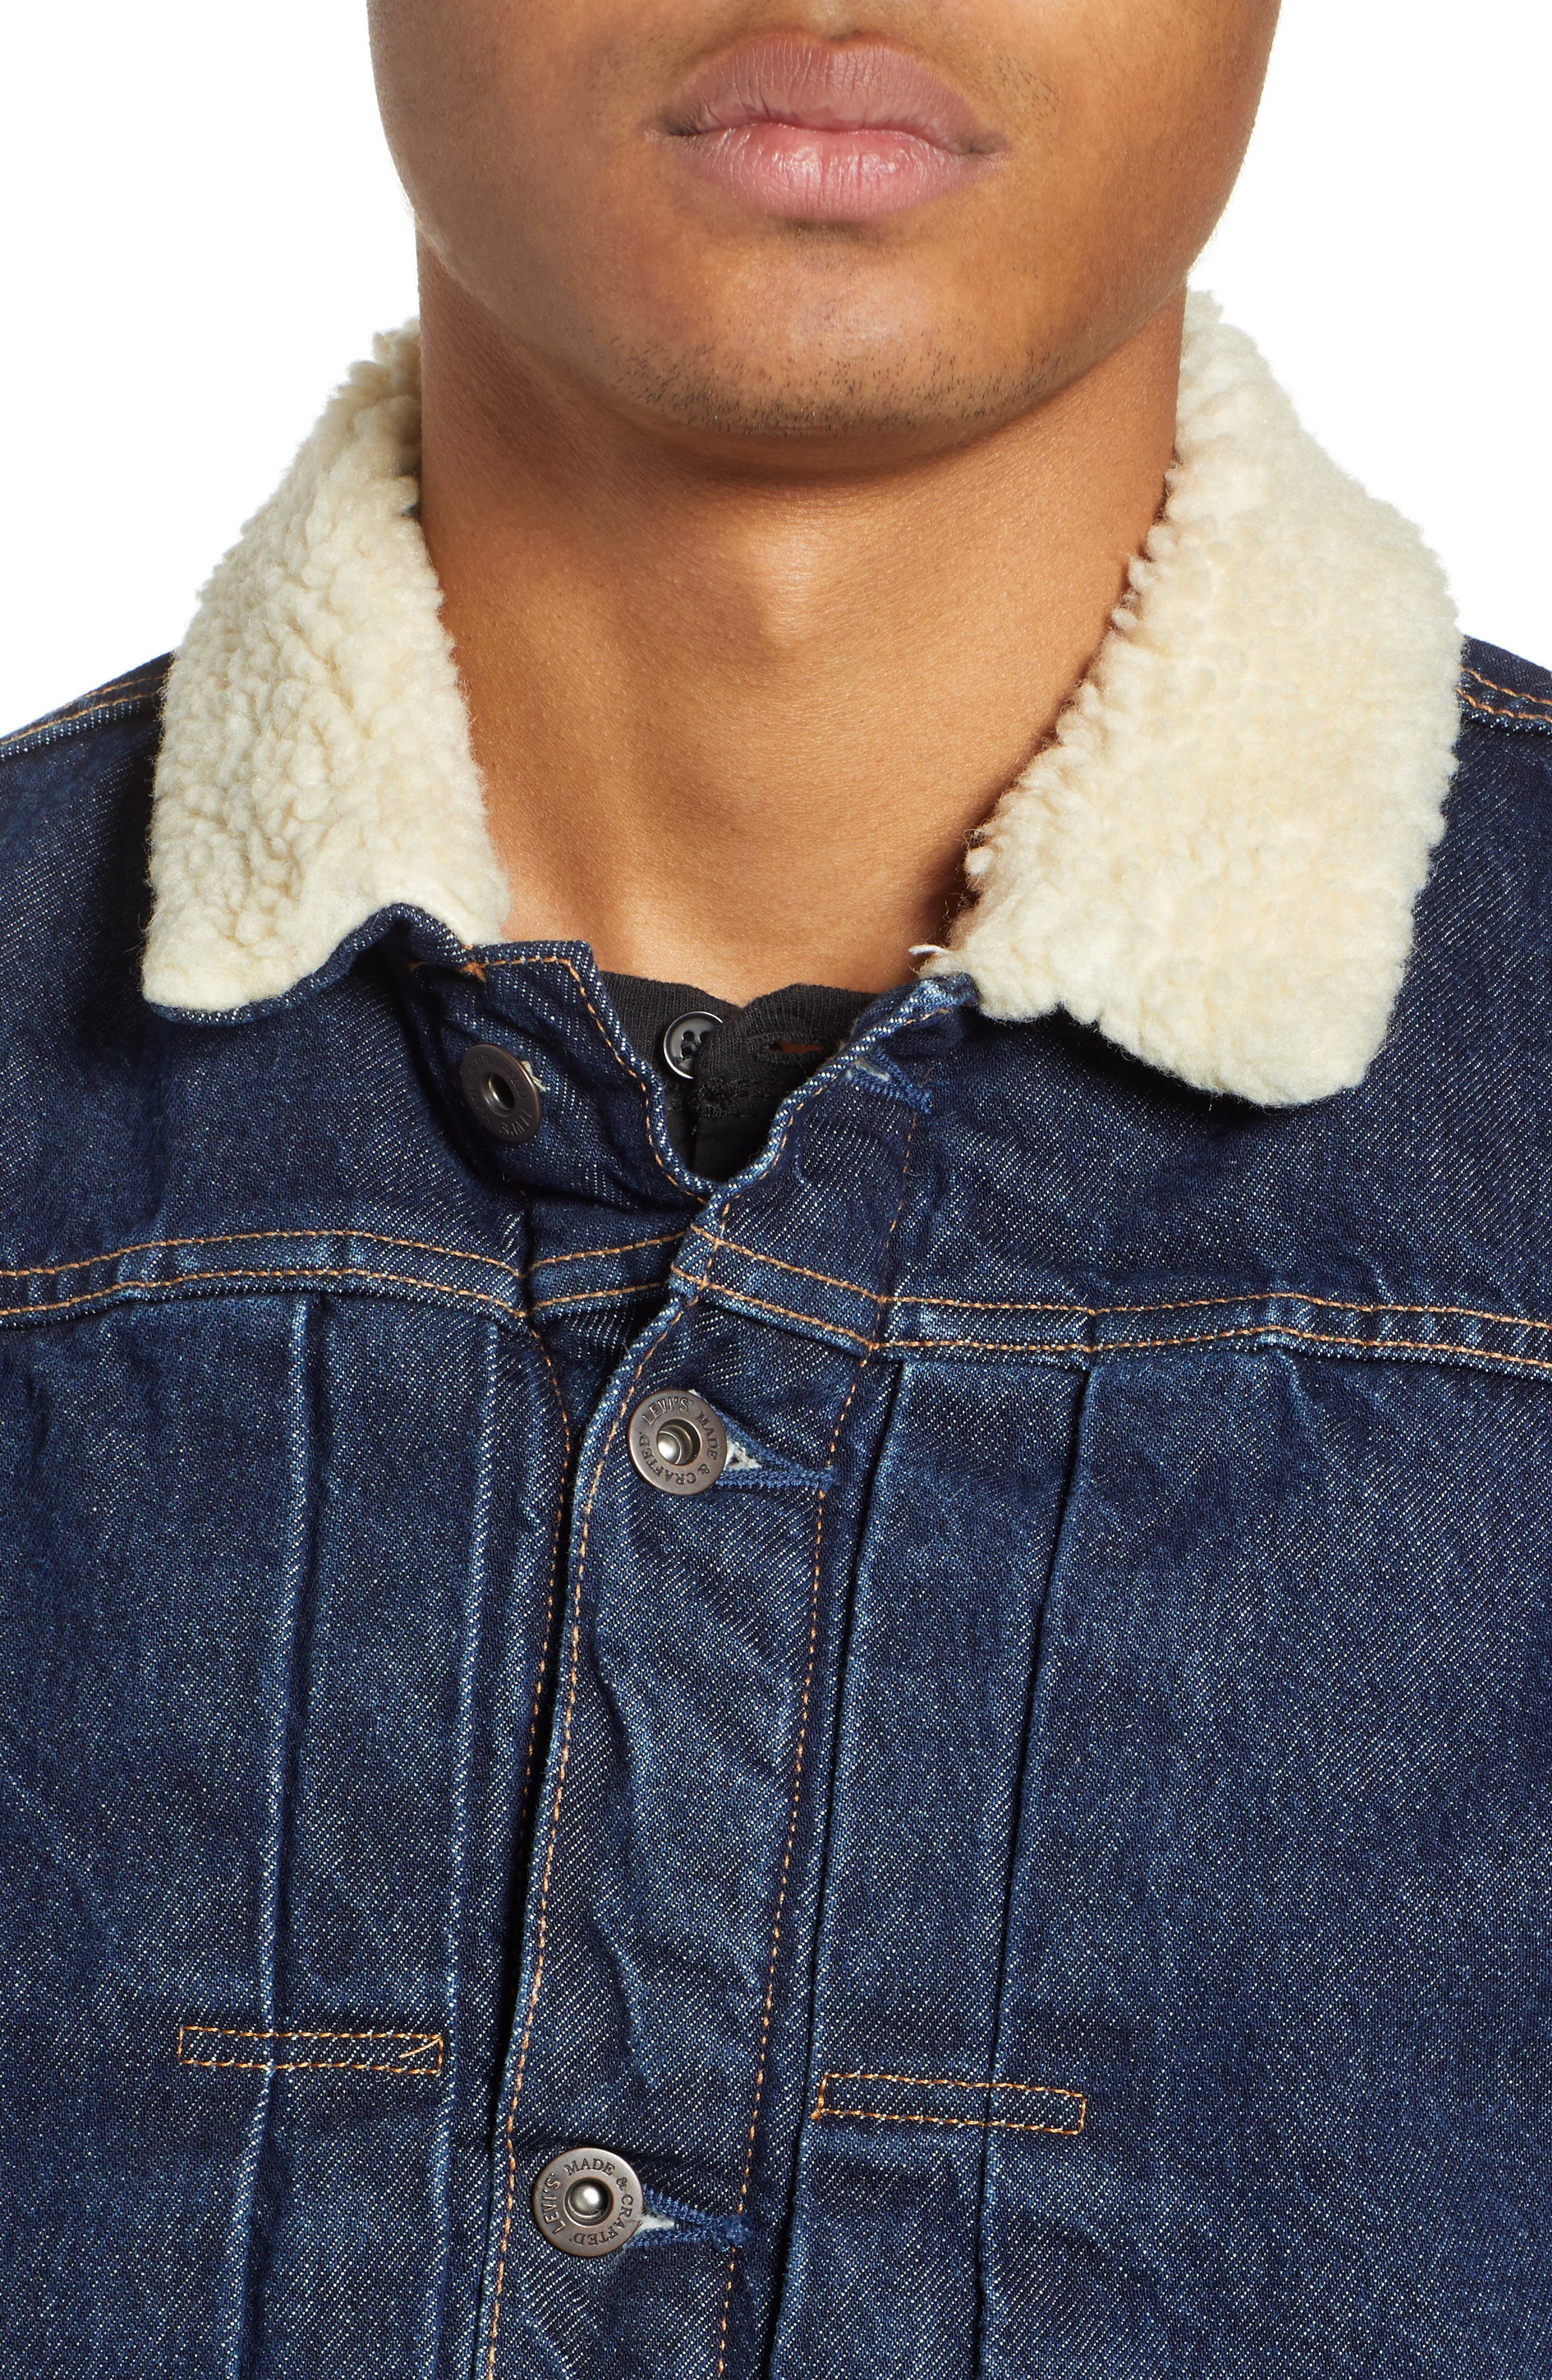 Levi's Made & Crafted<sup>™</sup> Faux Shearling Lined Denim Jacket,                             Alternate thumbnail 4, color,                             CANYON